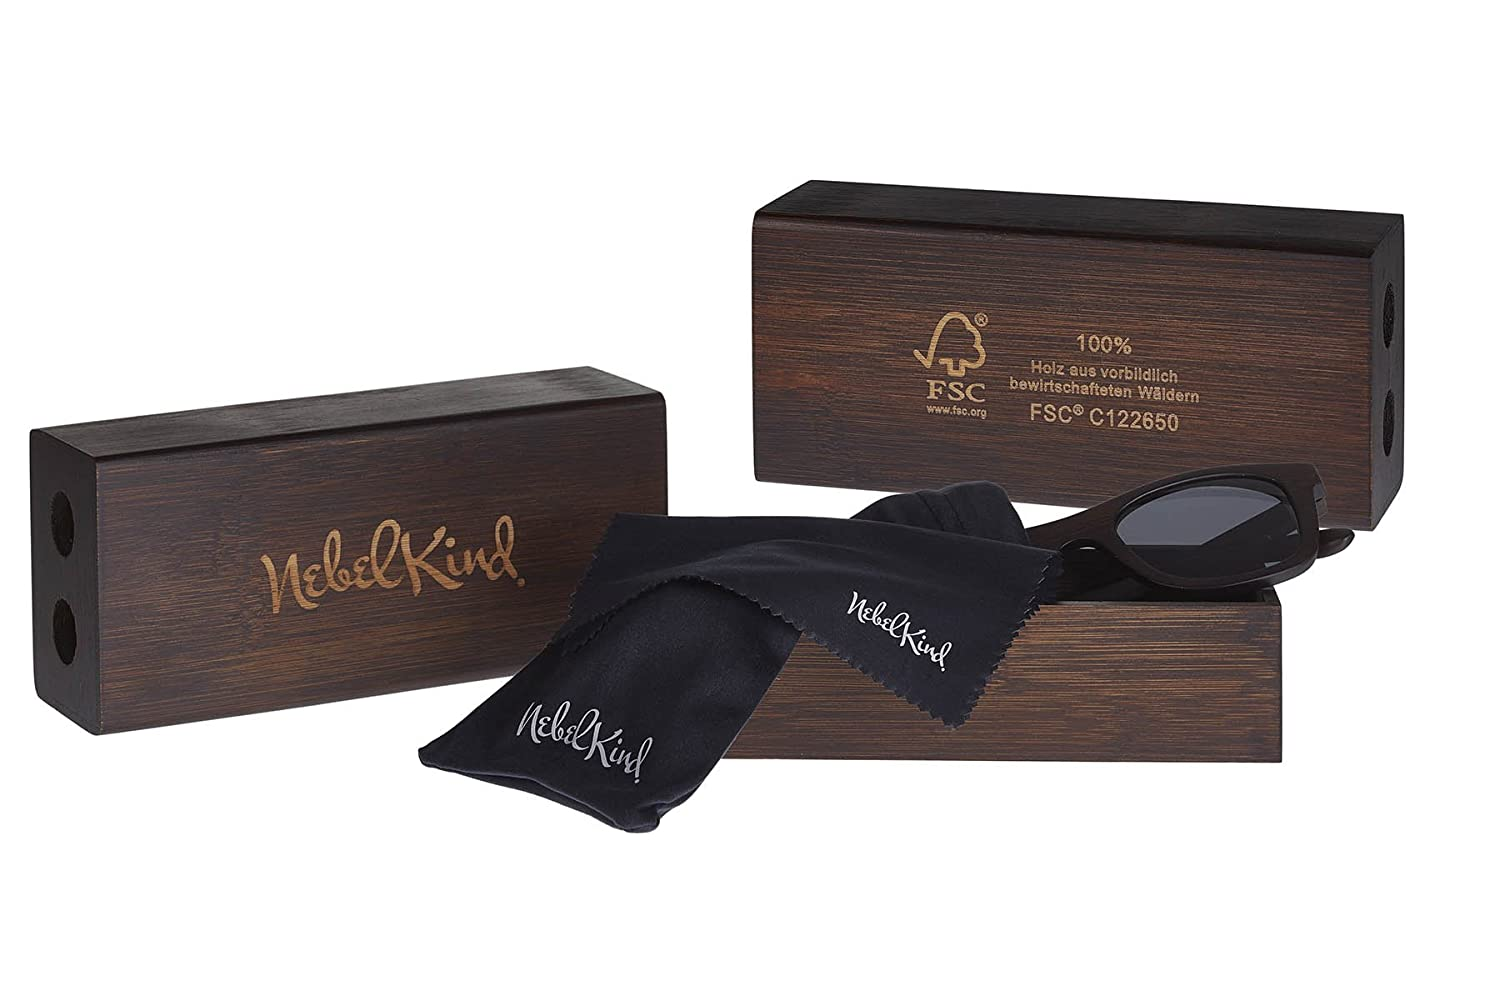 Nebelkind Wooden Sunglasses Bamboobastic made of Bamboo darkbrown  FSC-certified unisex  Amazon.co.uk  Clothing a9f74c2d9e53